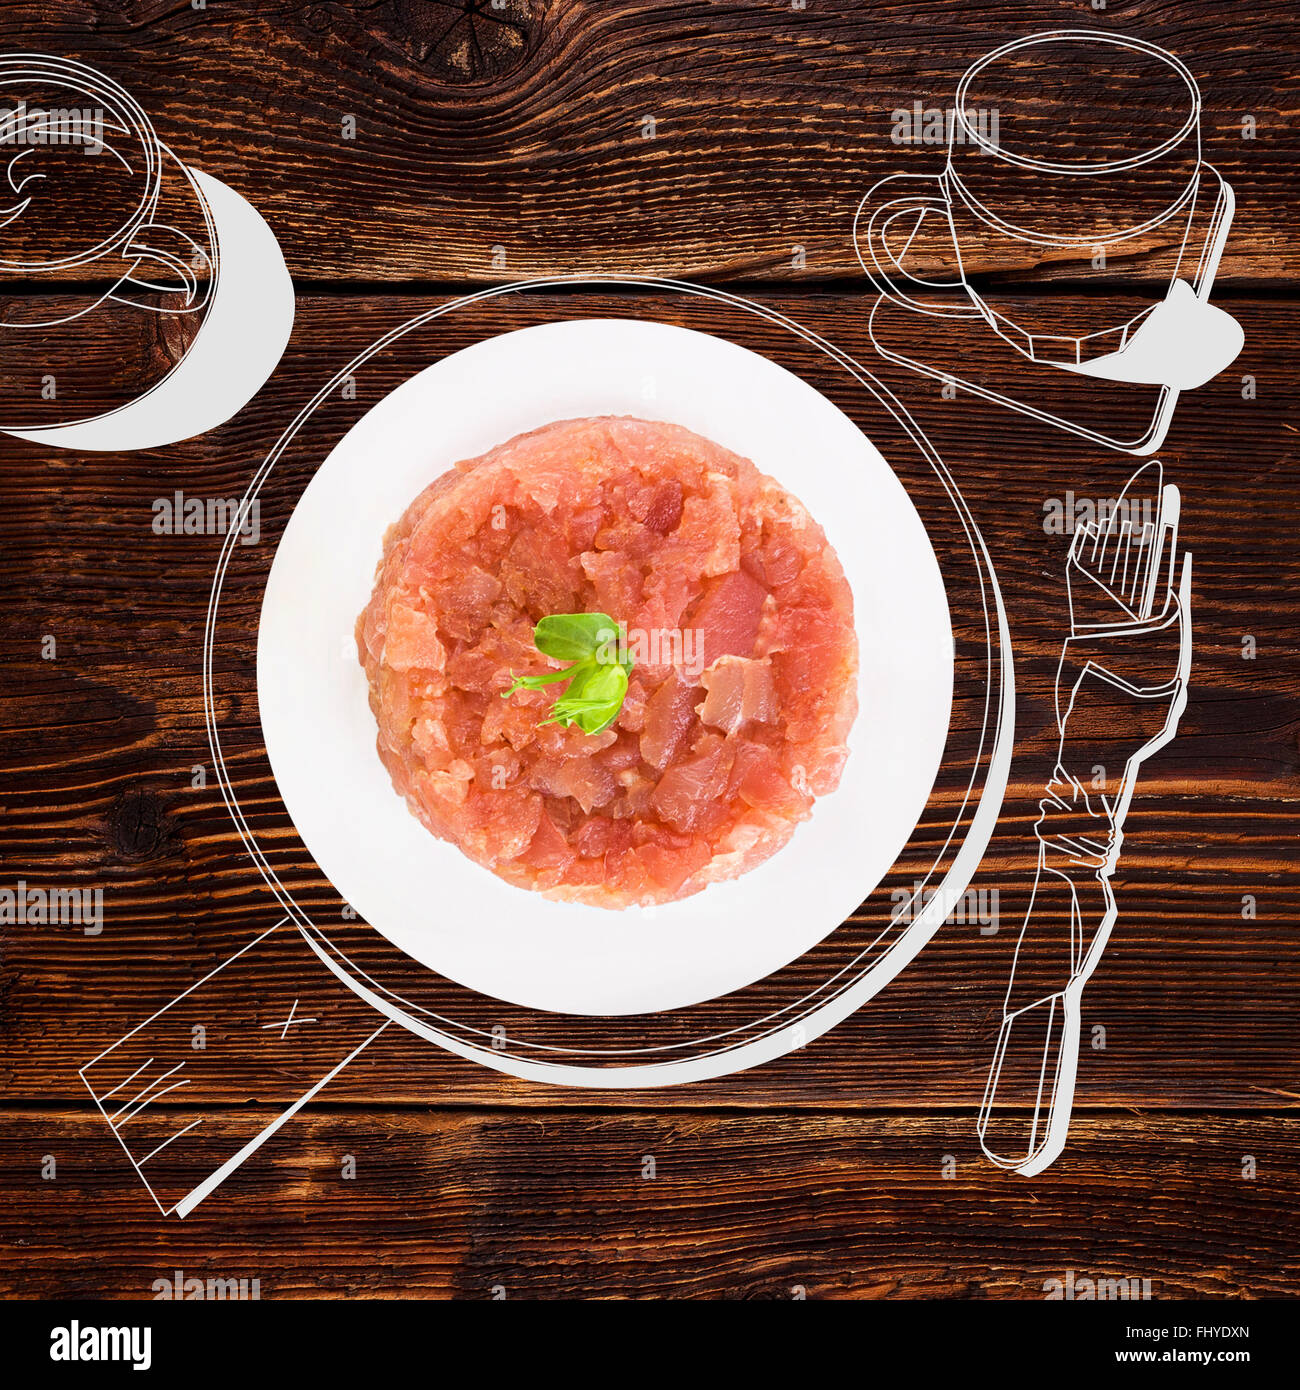 Delicious salmon tartare. Fine dining, exquisite luxurious gastronomy background. - Stock Image